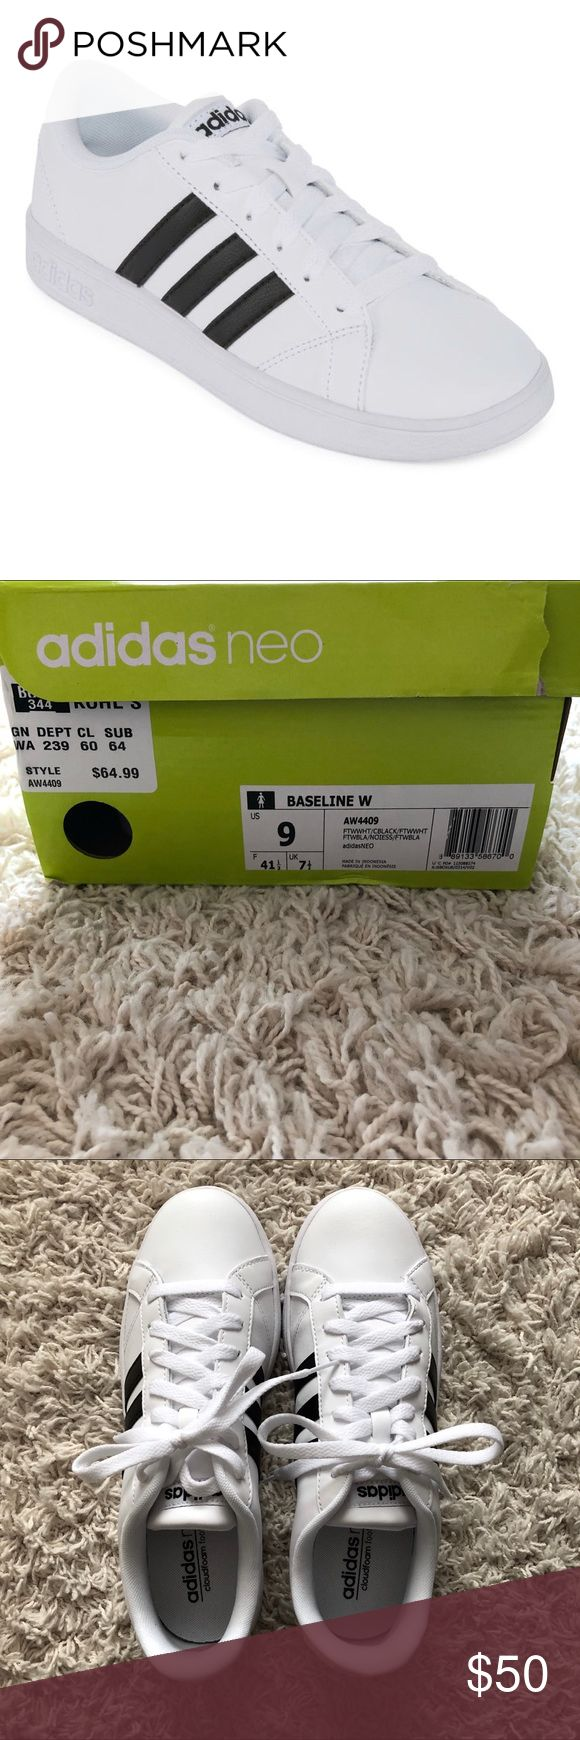 NEW Women's Adidas Baseline Sneakers * Never been worn * Comes with original tissue * Can be shipped with or without box depending on your preference * Ordered online and could not be returned adidas Shoes Sneakers